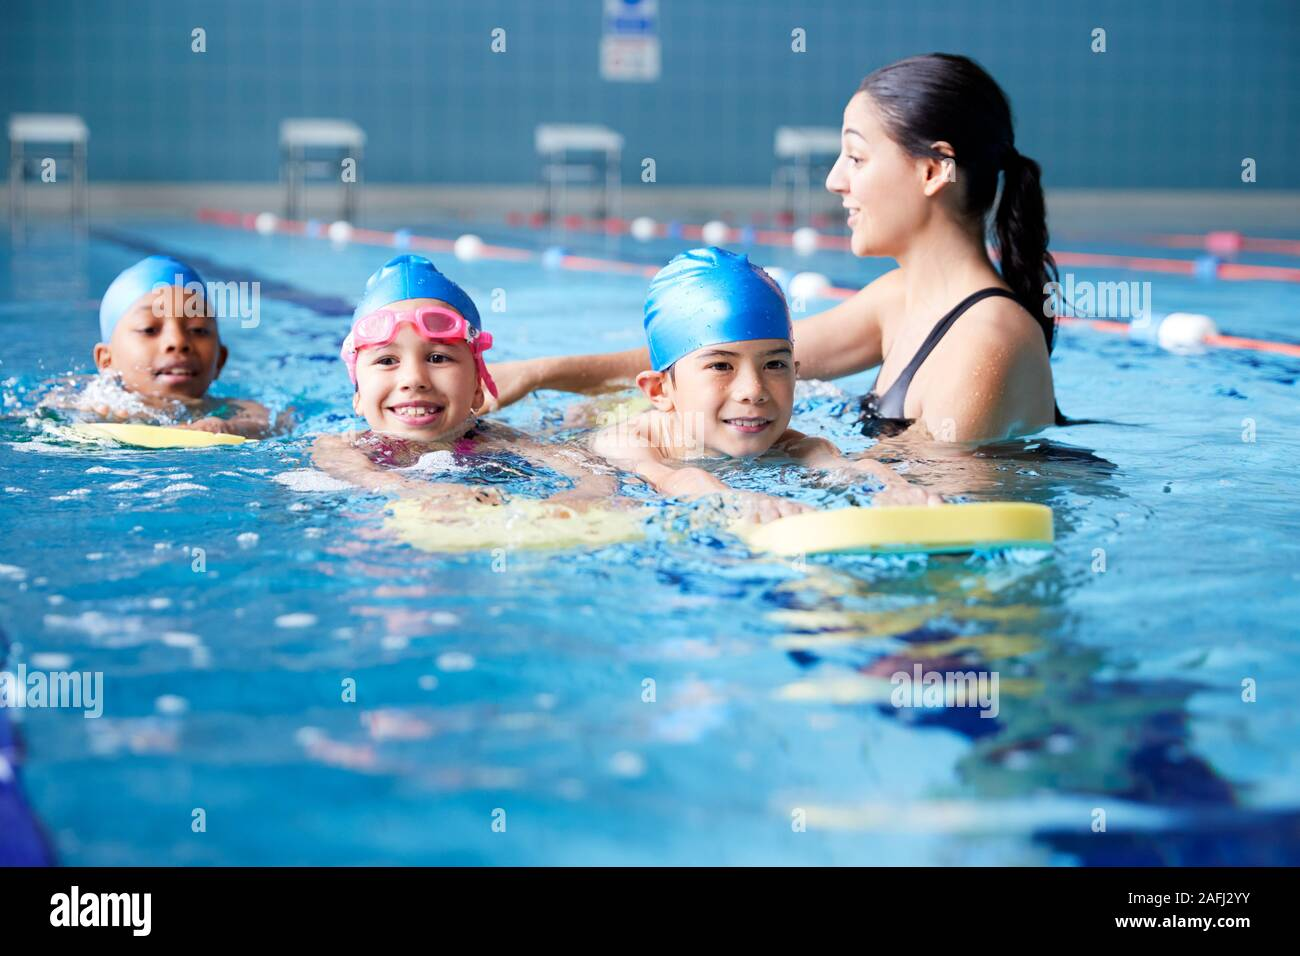 Female Coach In Water Giving Group Of Children Swimming Lesson In Indoor Pool Stock Photo